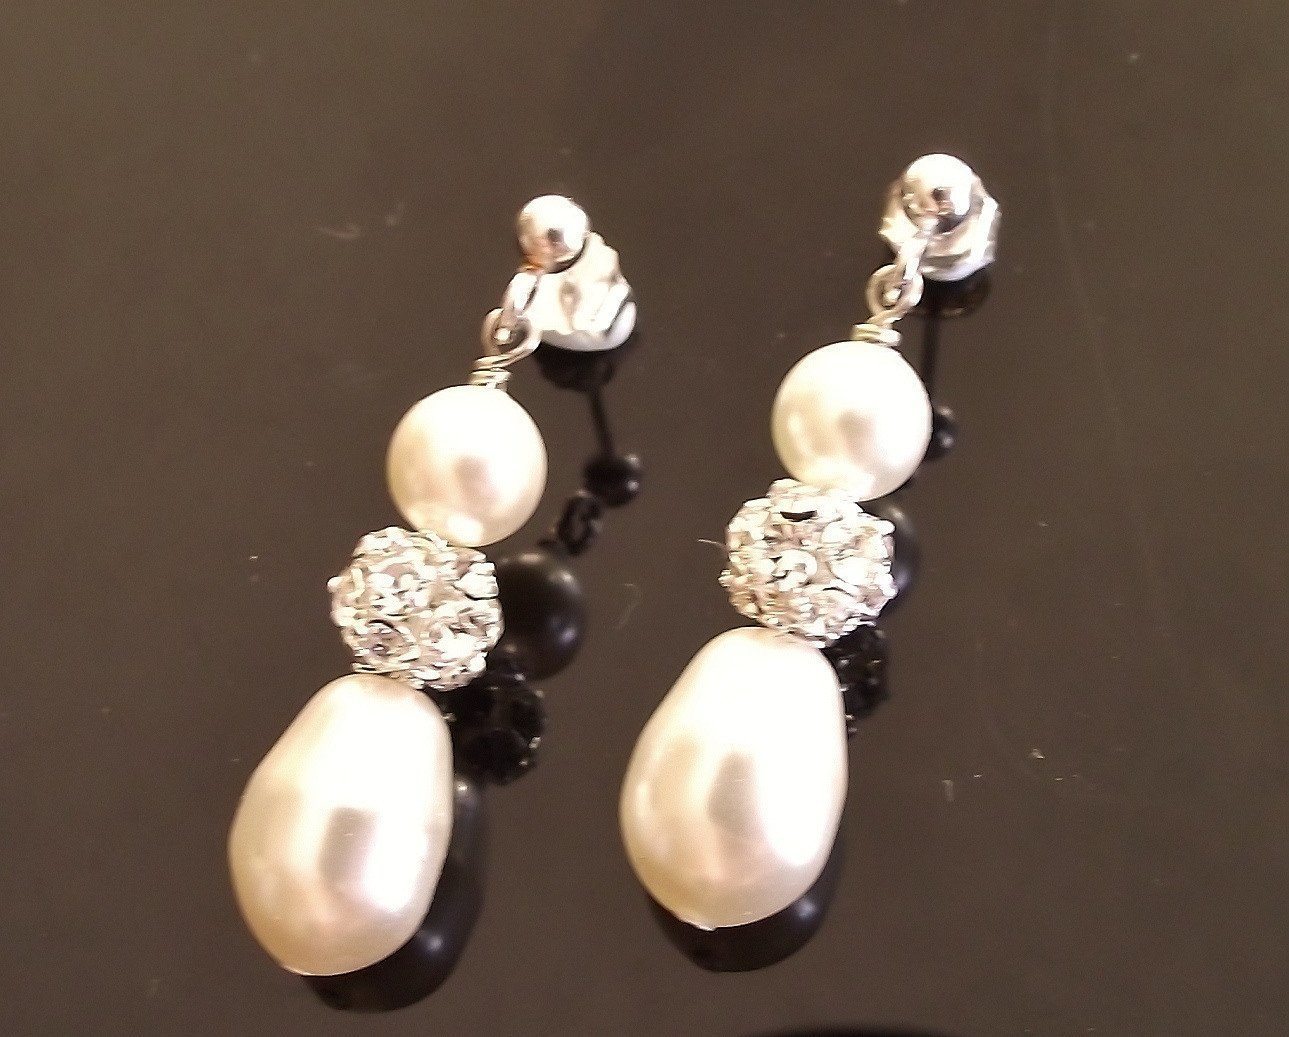 Wedding Earrings - Teardrop Pearl & Crystal Encrusted Earrings, Moritz